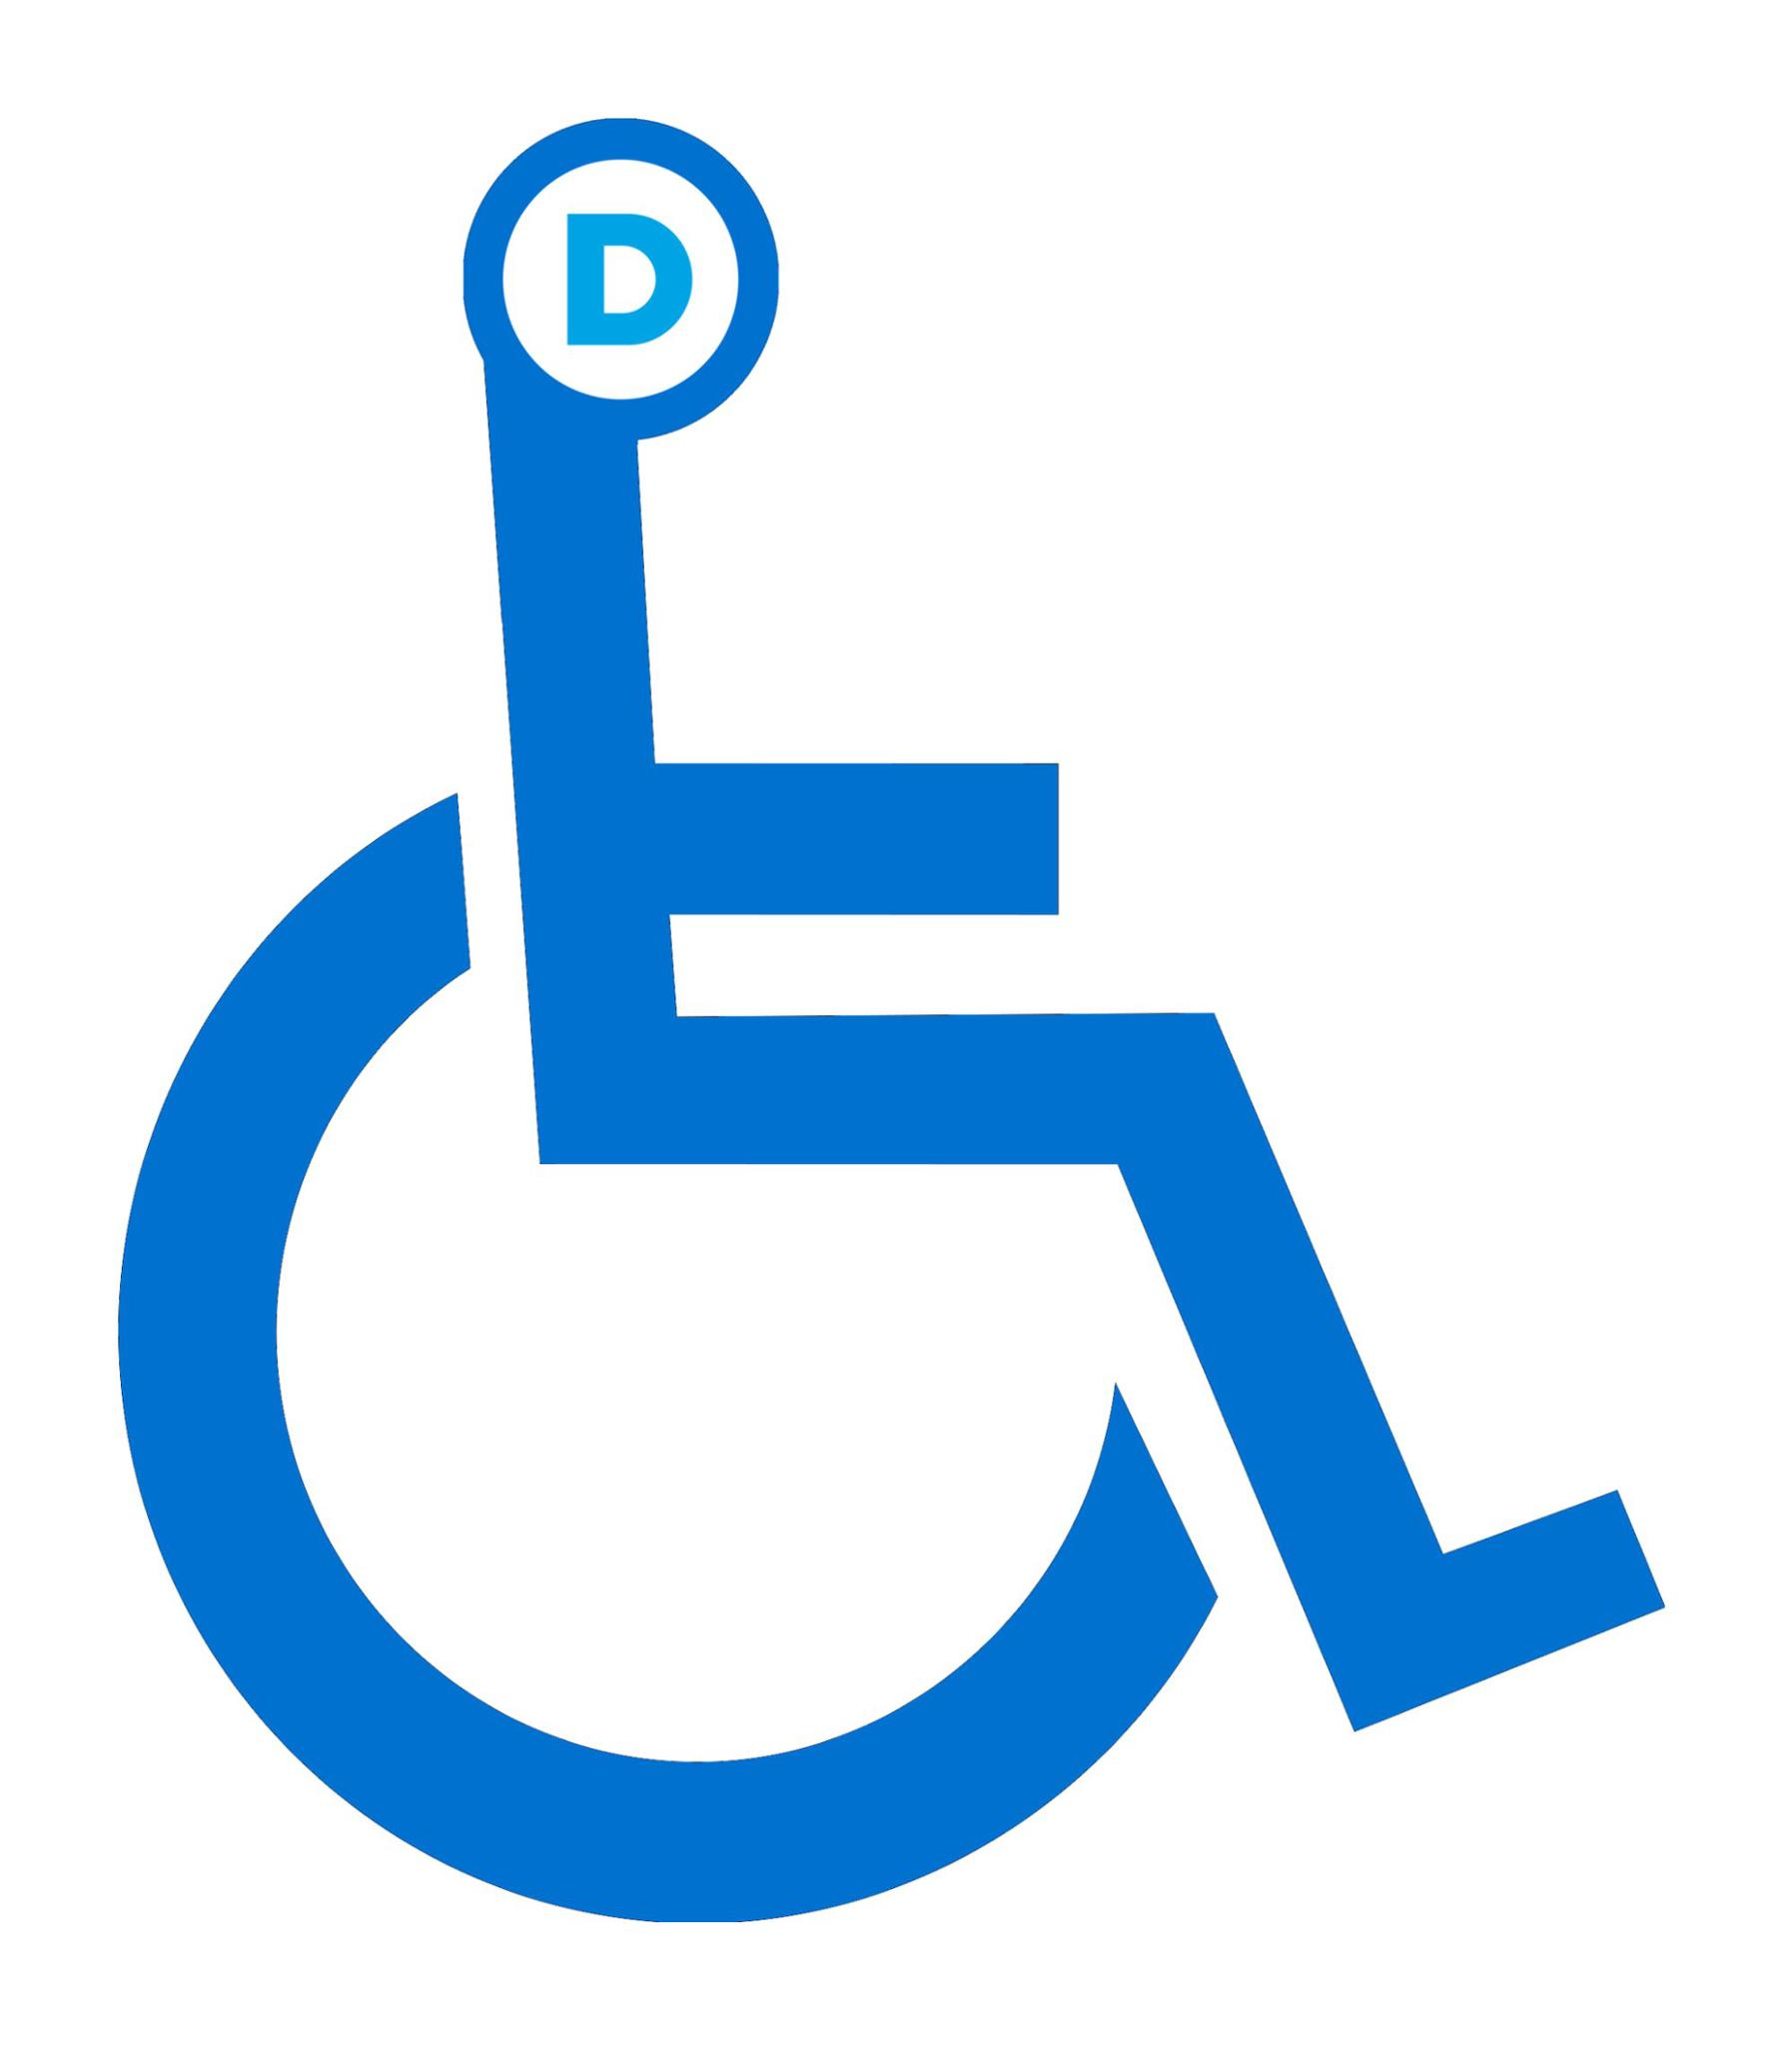 Democrats with Disability